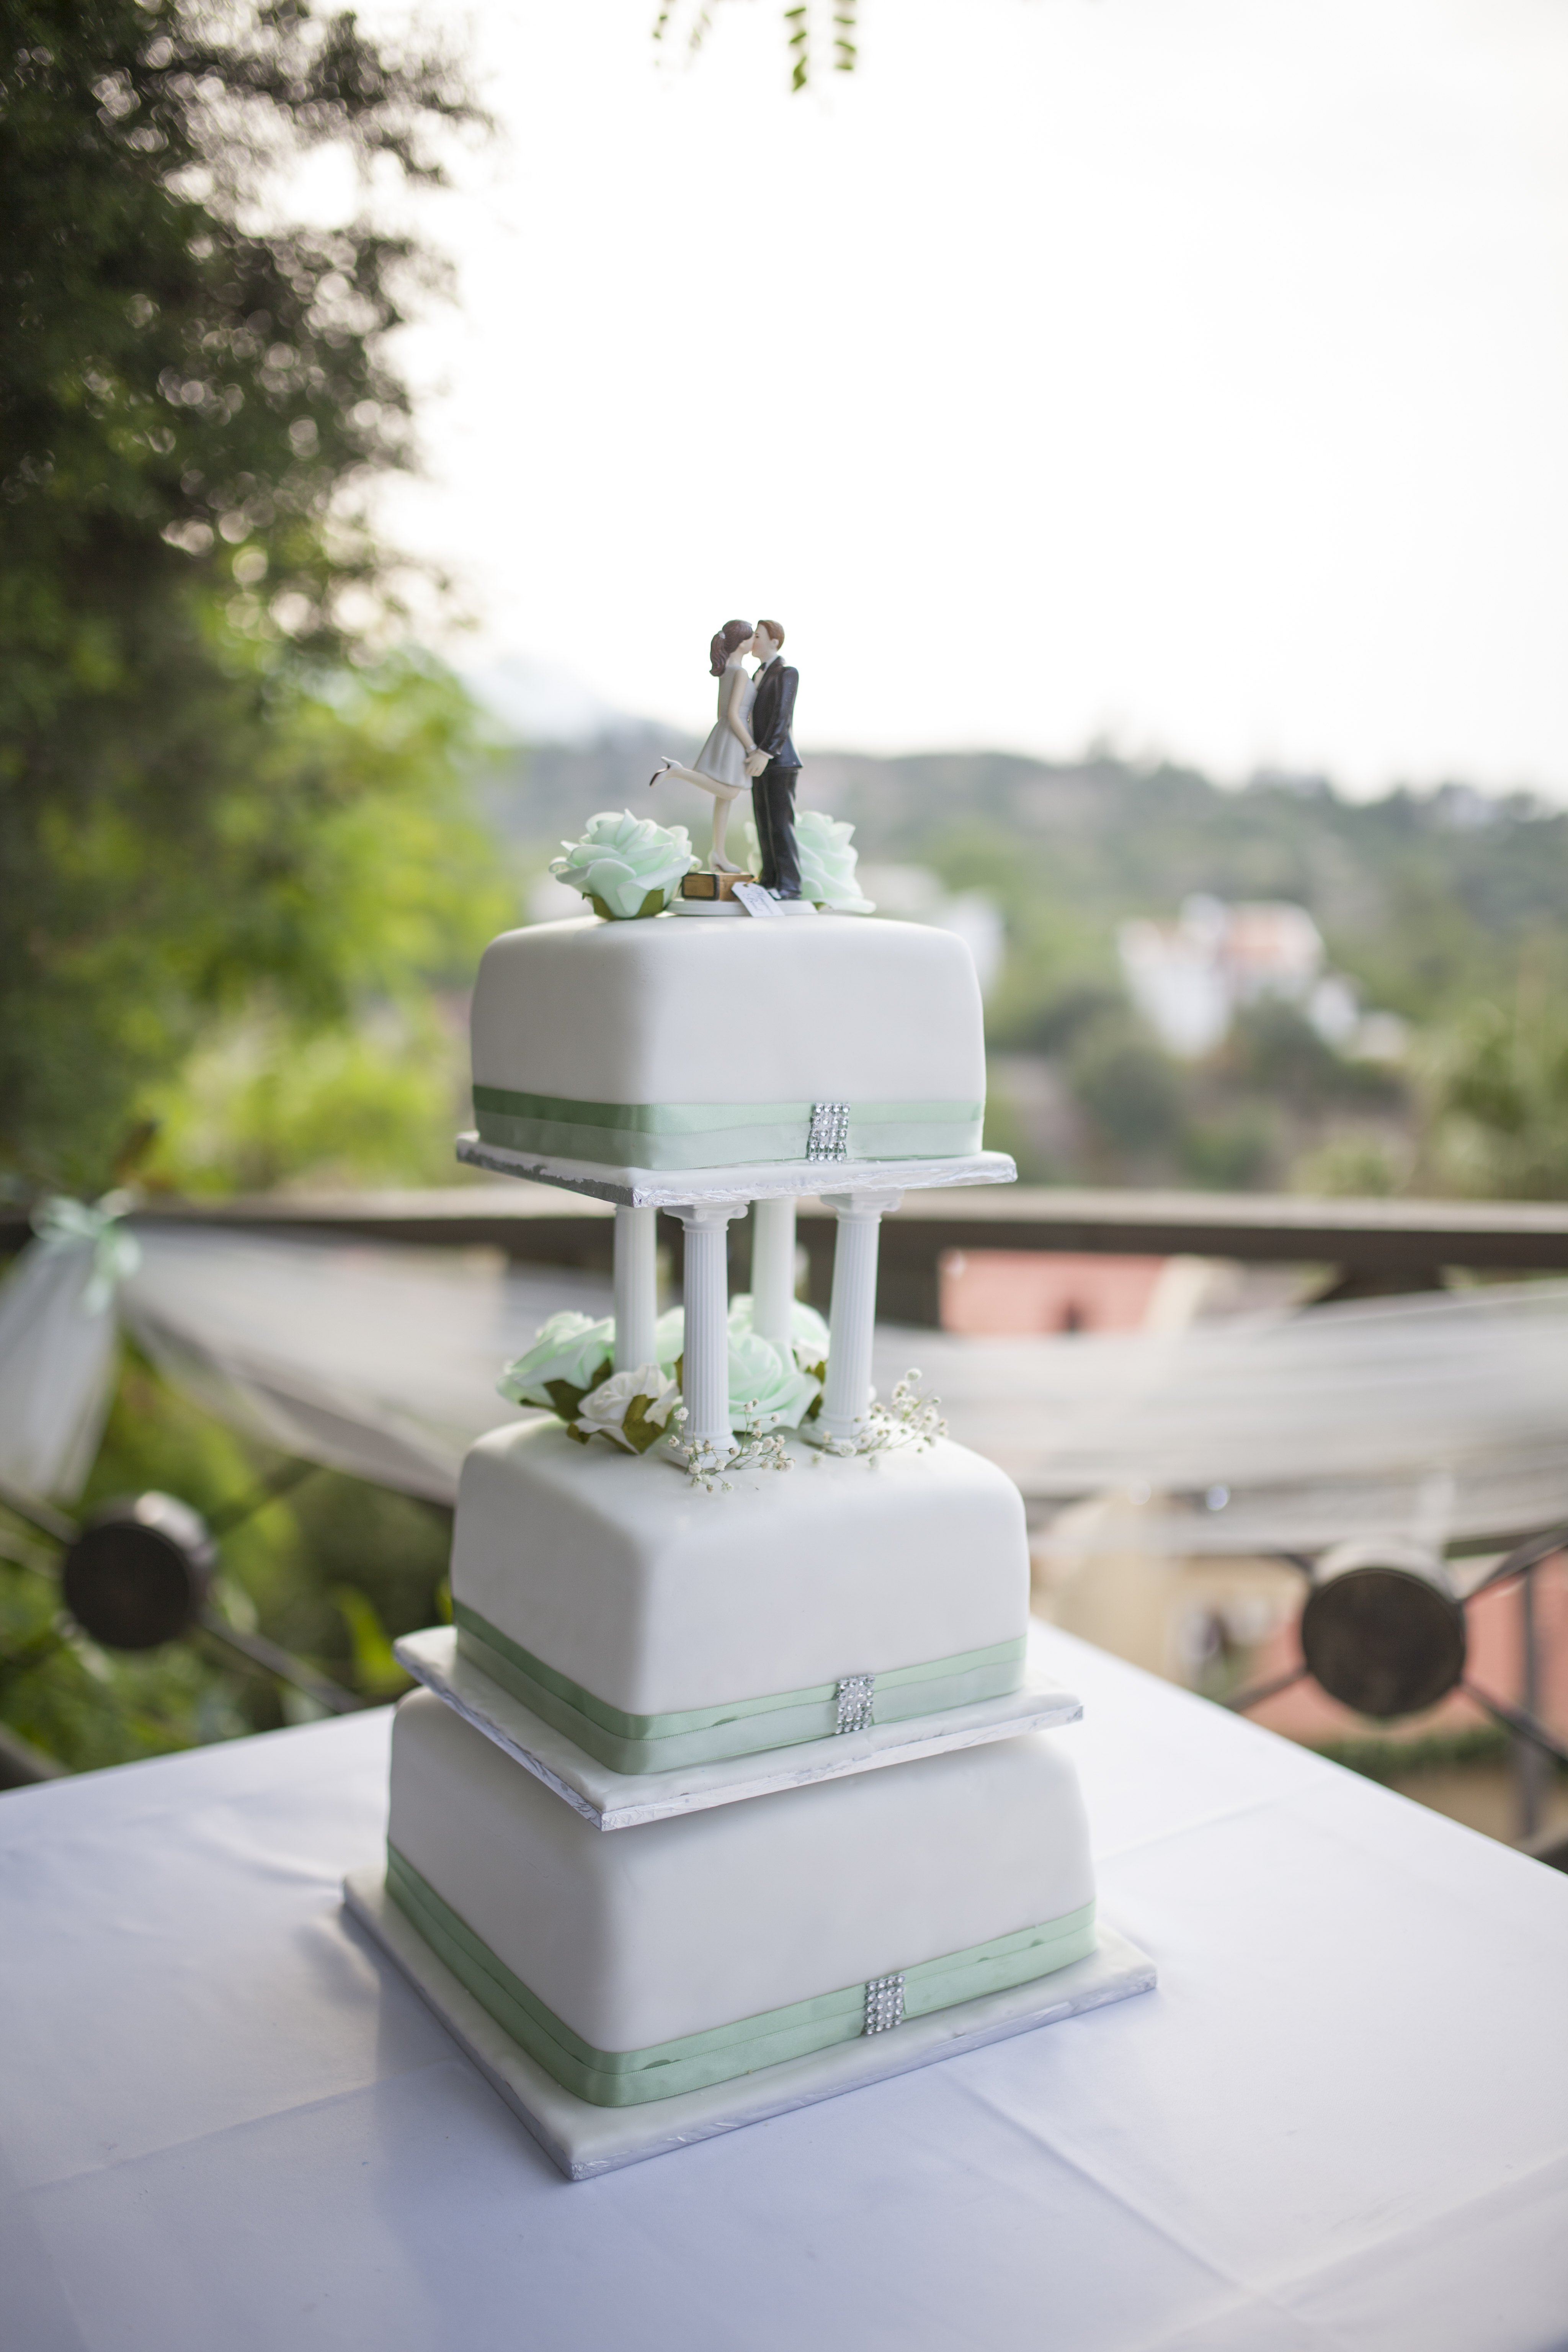 Wedding cakes in Northern Cyprus (19)